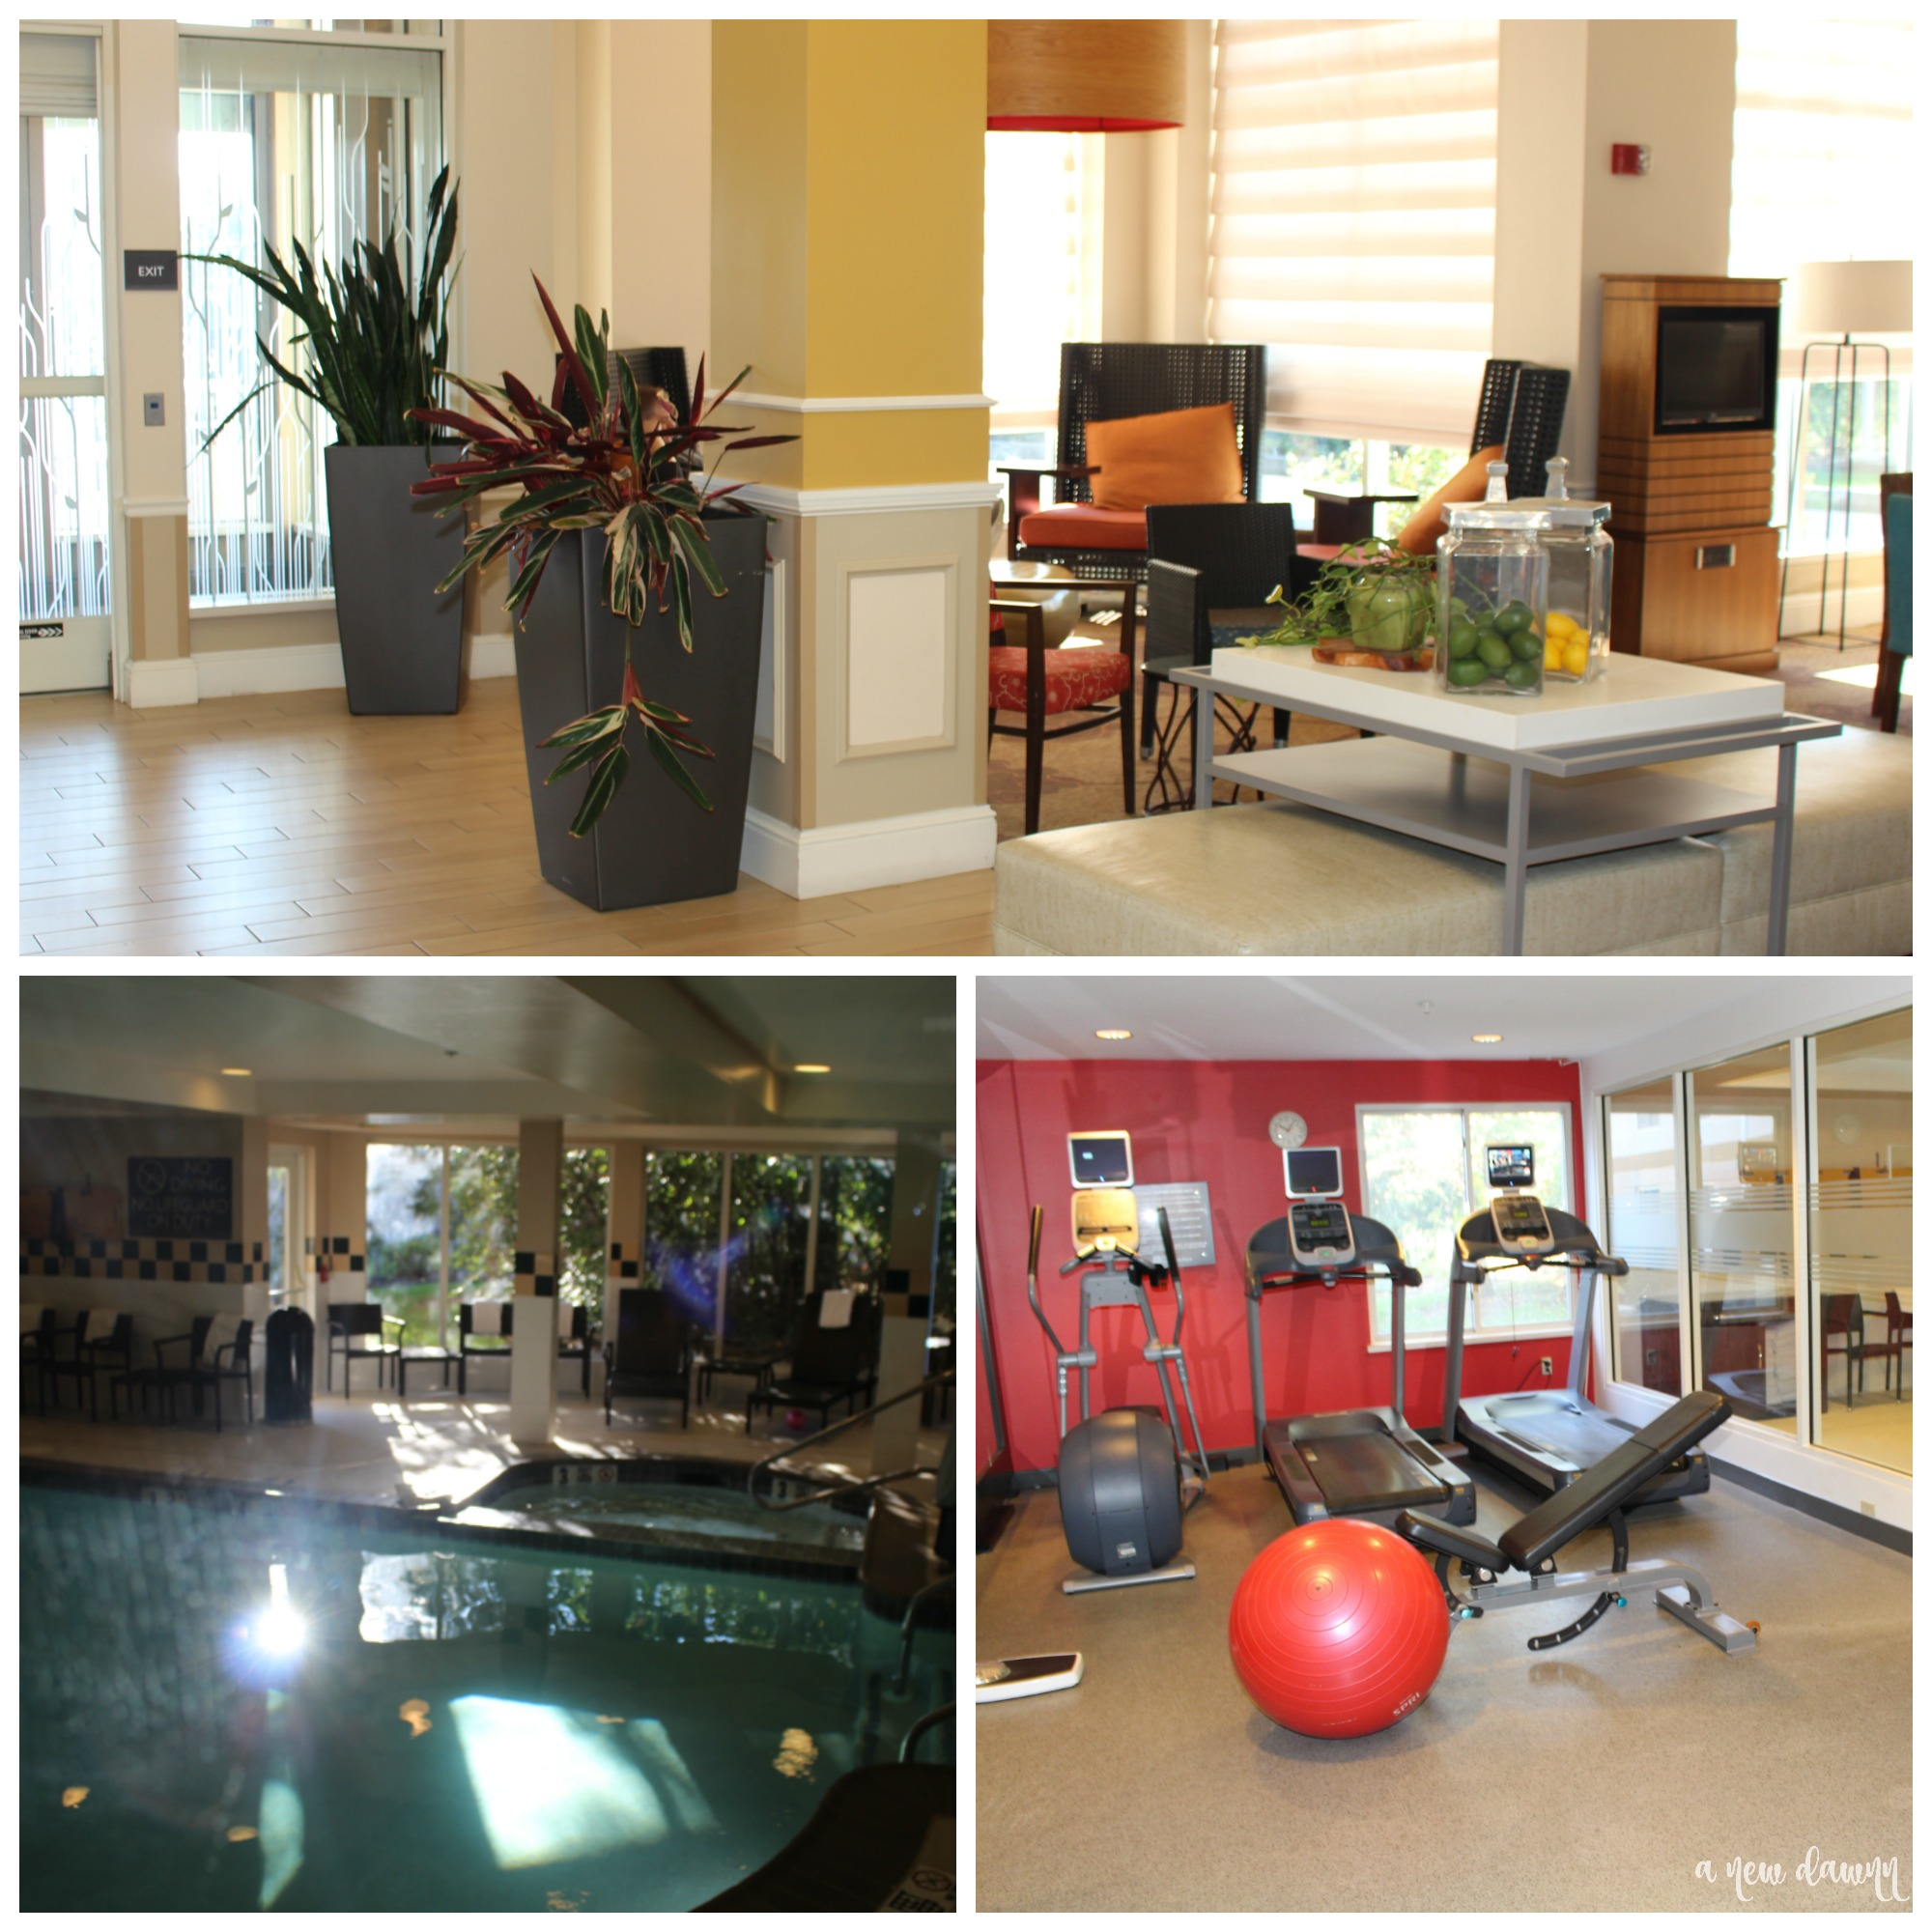 Gym and pool at the Hilton Garden Inn Hershey